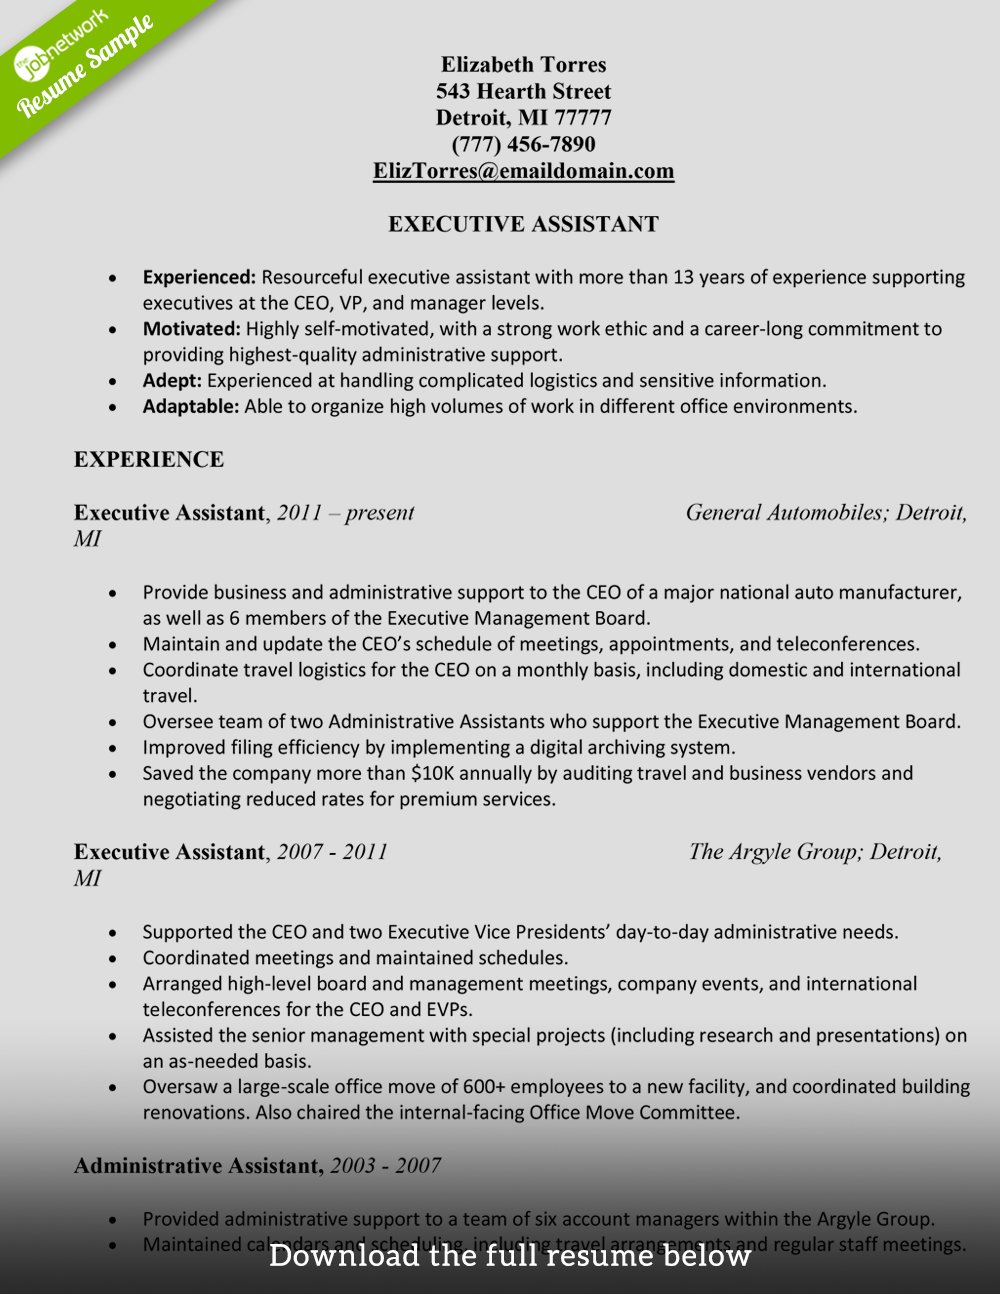 Administrative Assistant Resume Elizabeth Torres  Administrative Assistant Office Resume